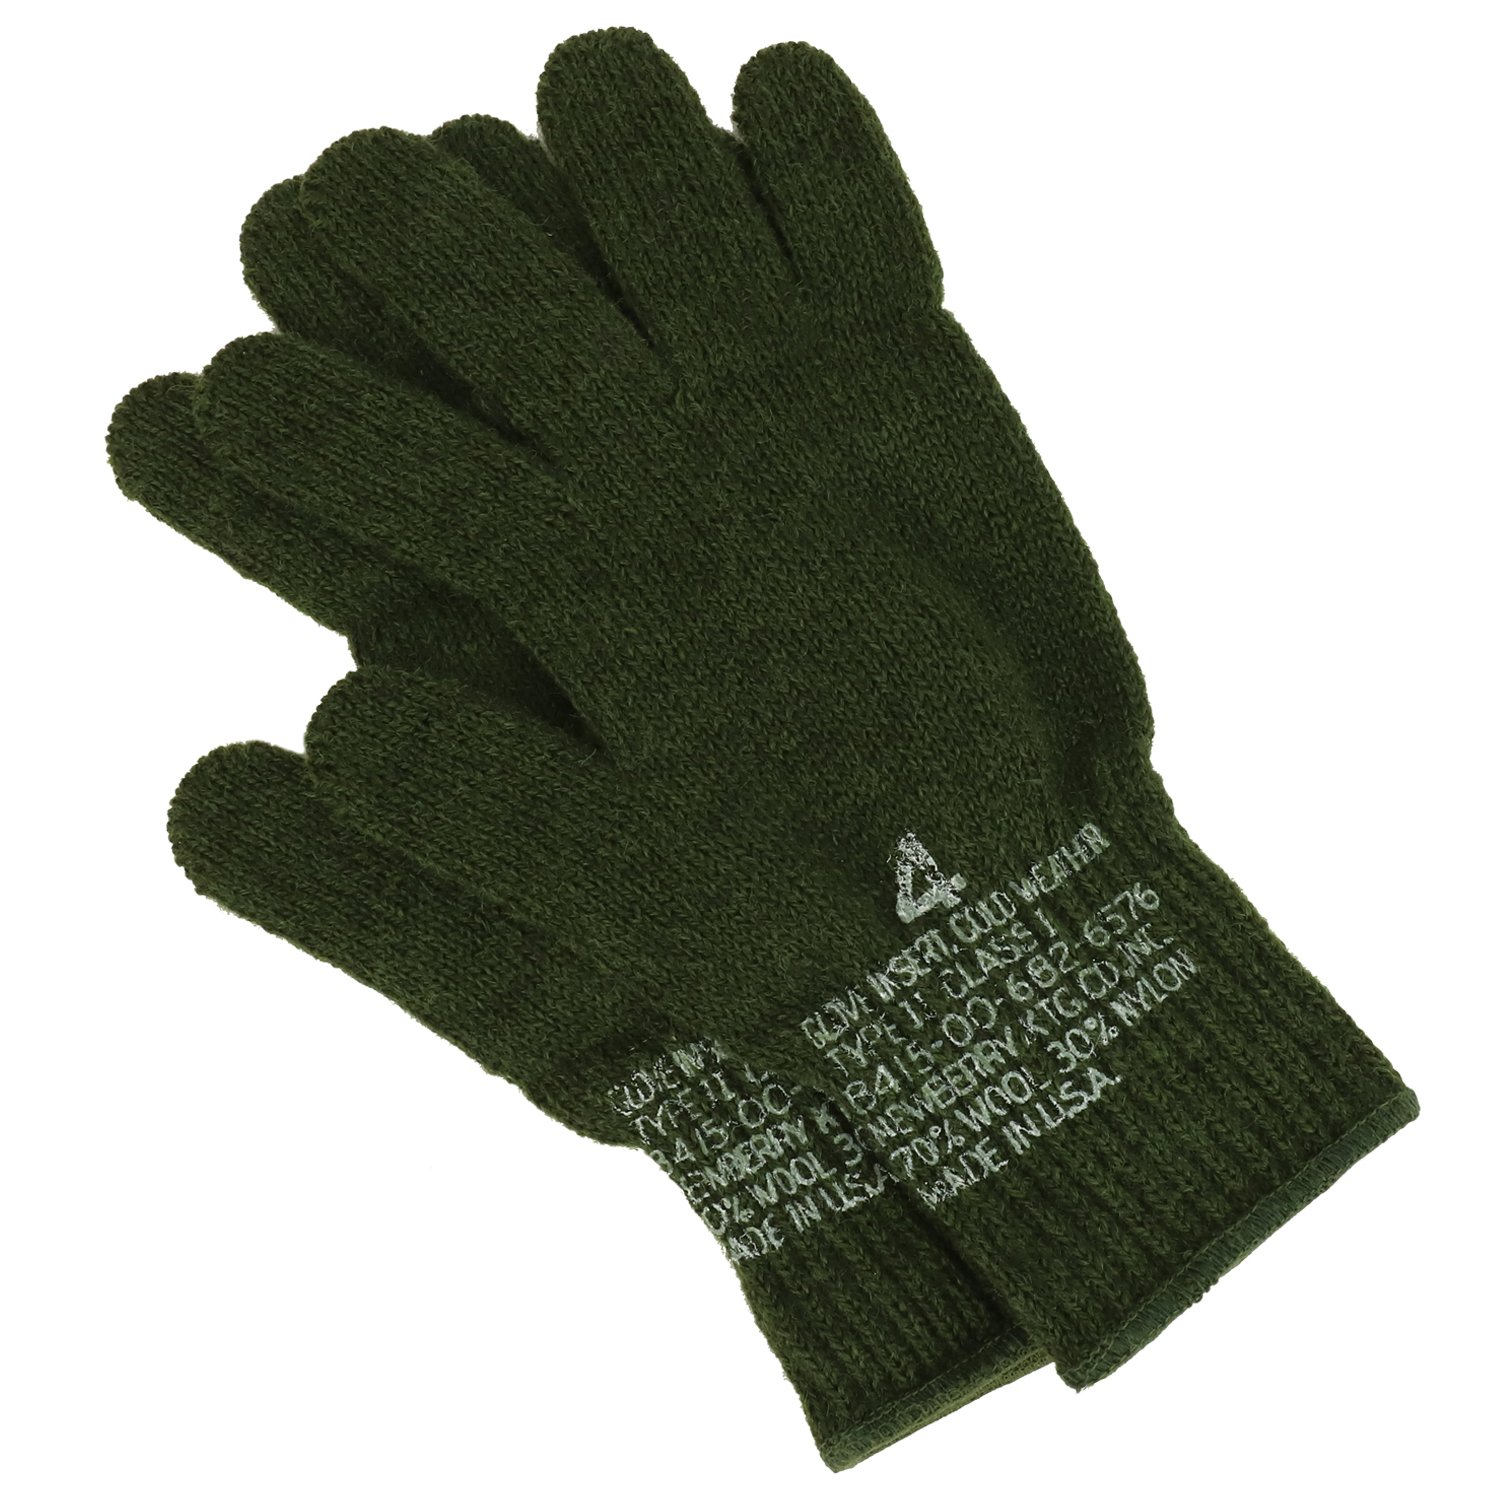 Armycrew Mens Goverment Issue Made in USA Wool Glove Liner